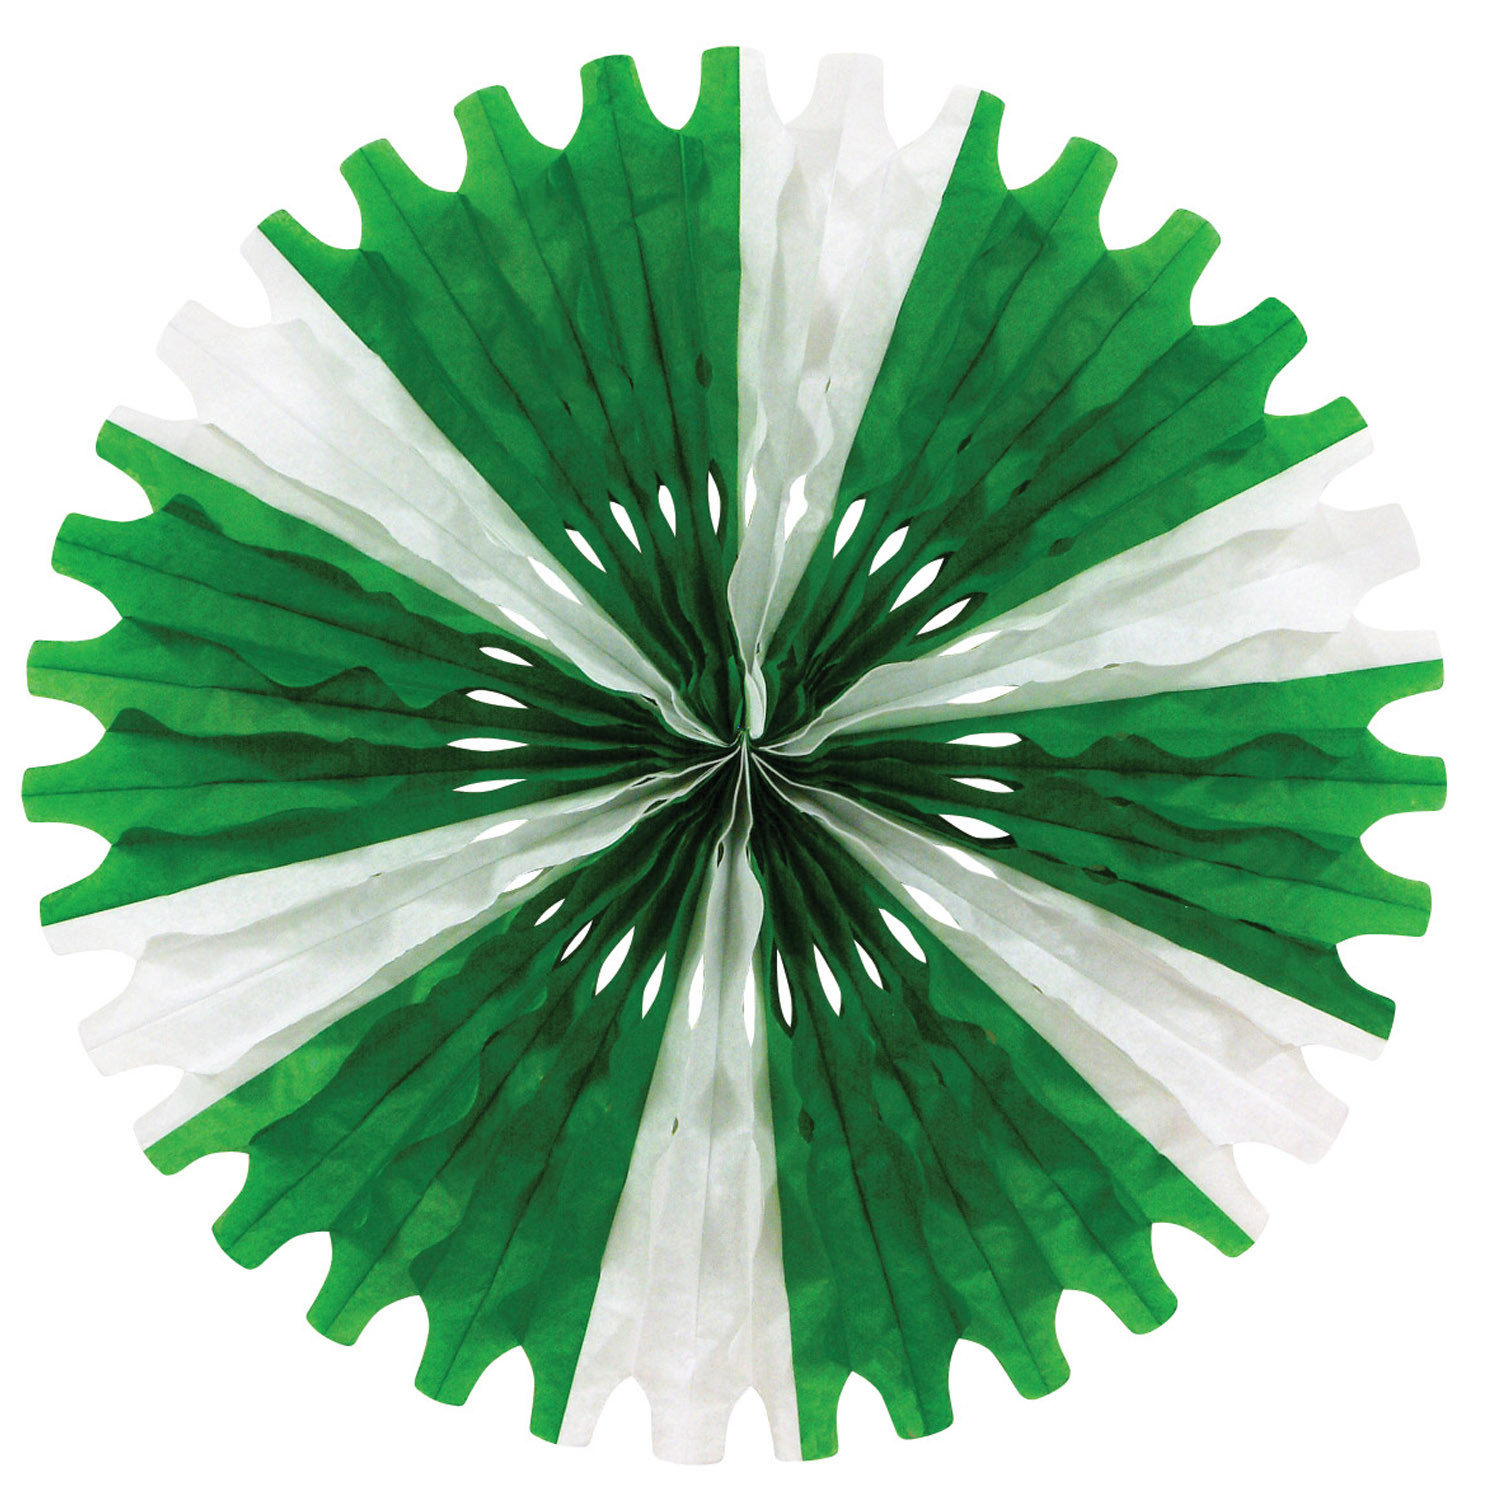 Tissue Fan (Pack of 12) Tissue Fan, decoration, green, white, st. patricks day, new years eve, wholesale, inexpensive, bulk